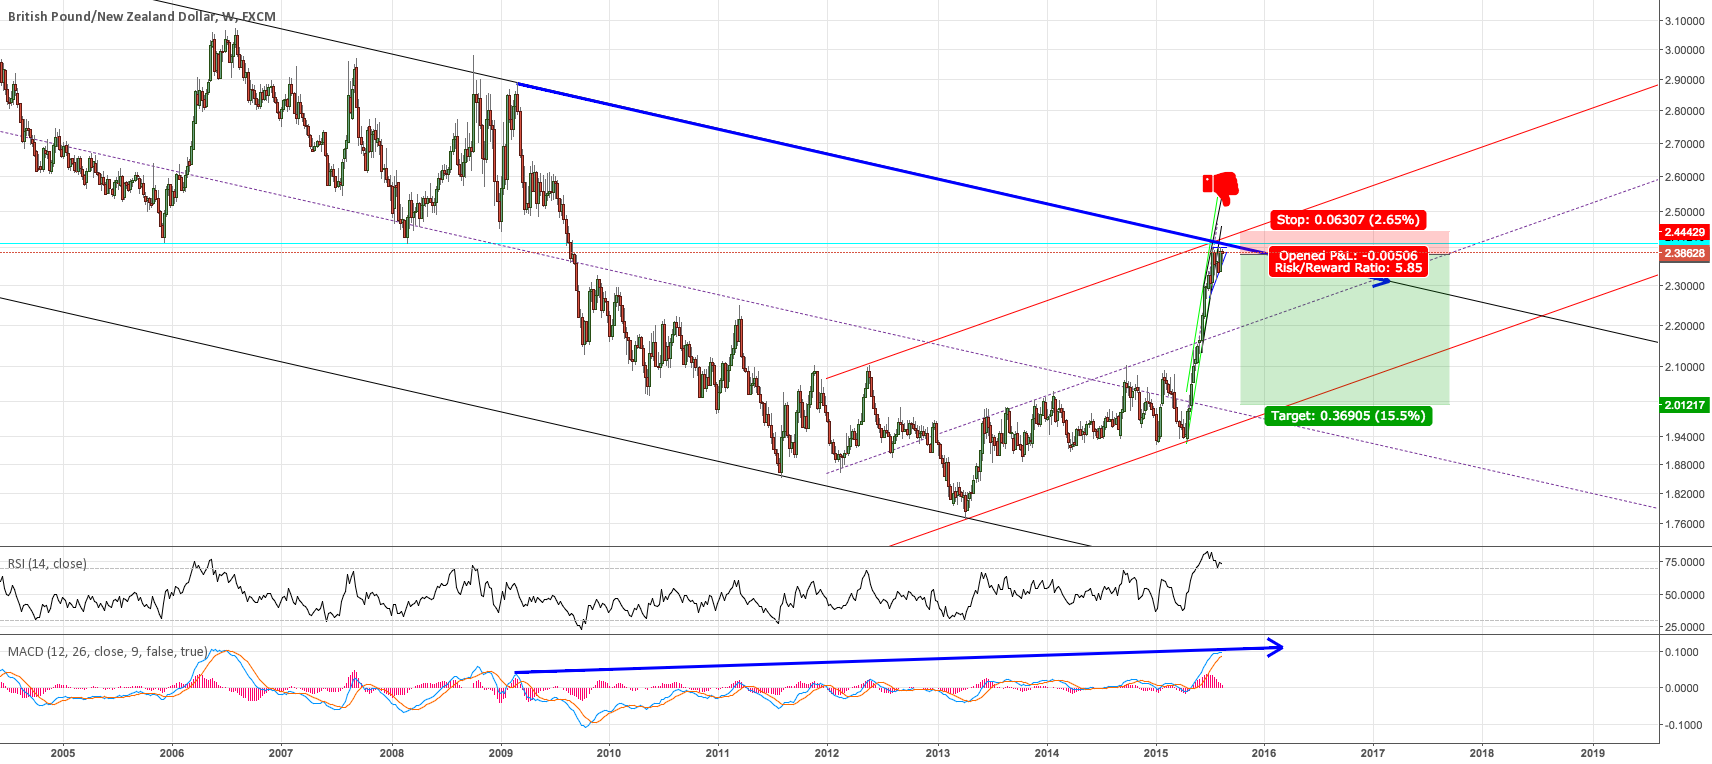 Some serious resistance on GBPNZD